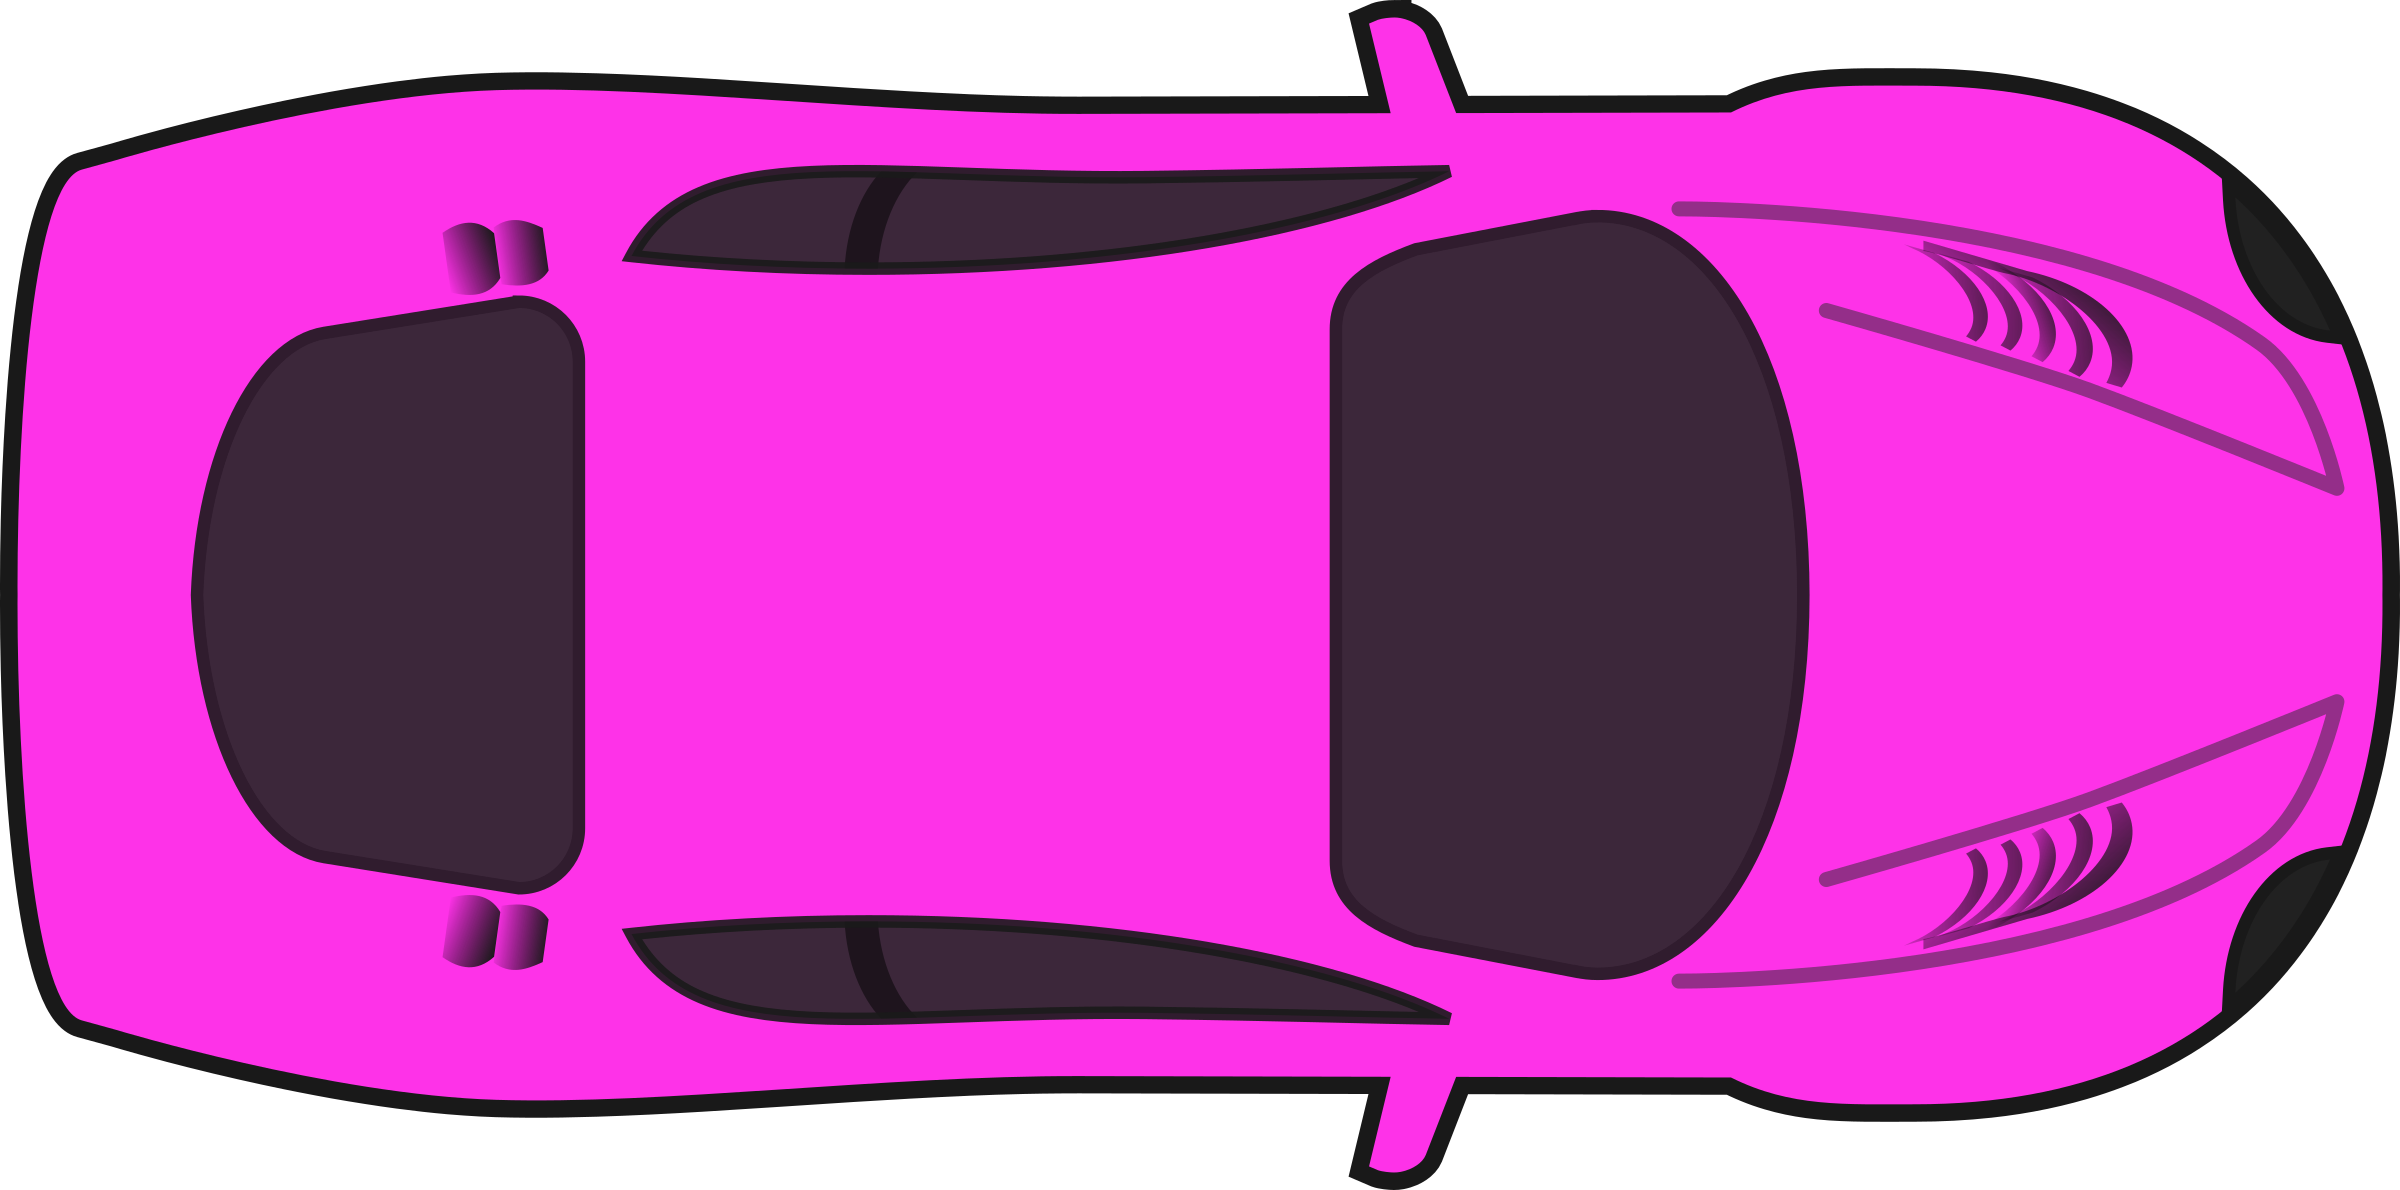 Green race car clipart clip art transparent library Pink Racing Car (Top View) Icons PNG - Free PNG and Icons Downloads clip art transparent library